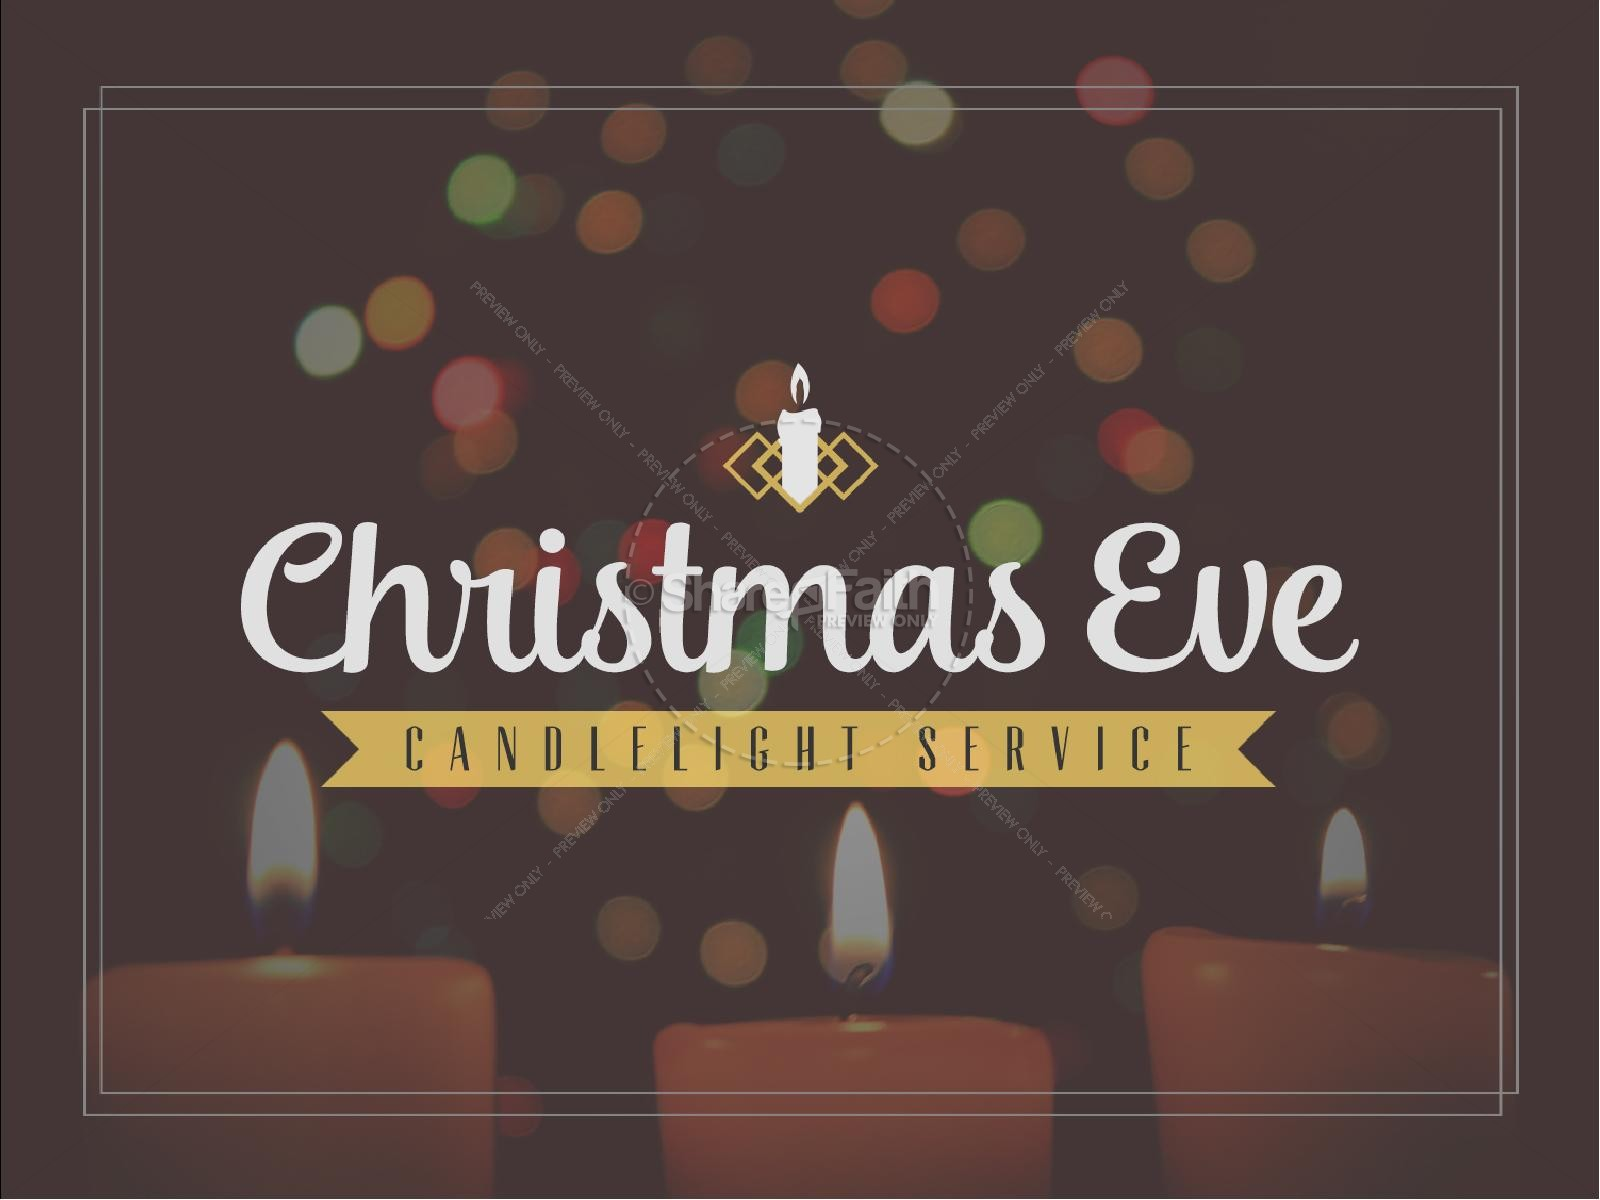 Christmas Eve Candlelight Service Ministry PowerPoint